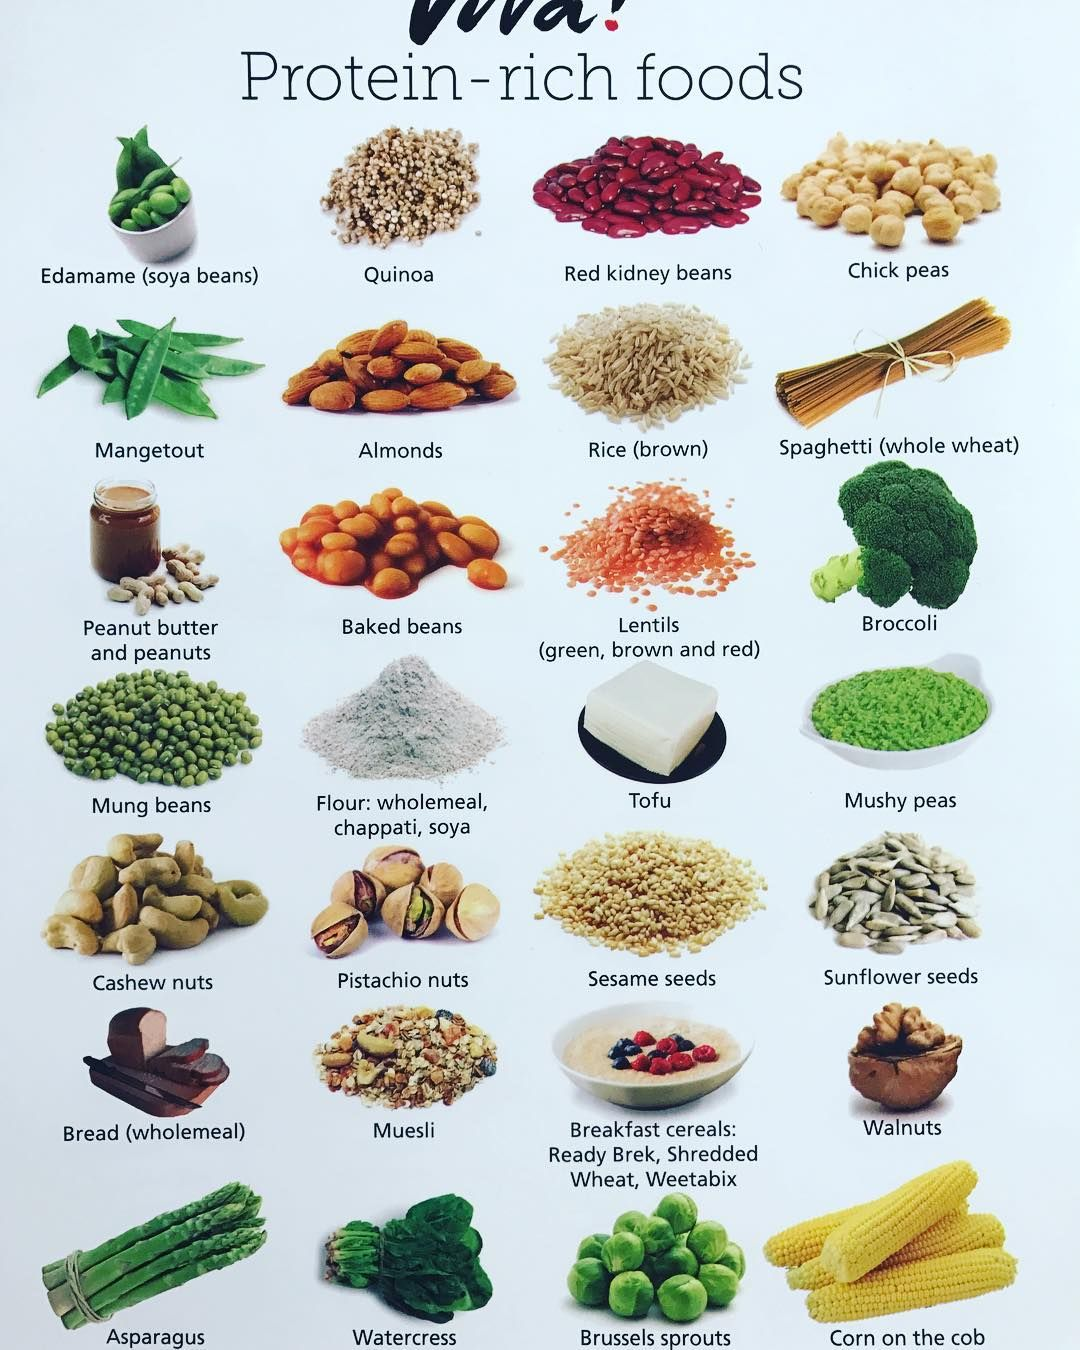 what do proteins do for you